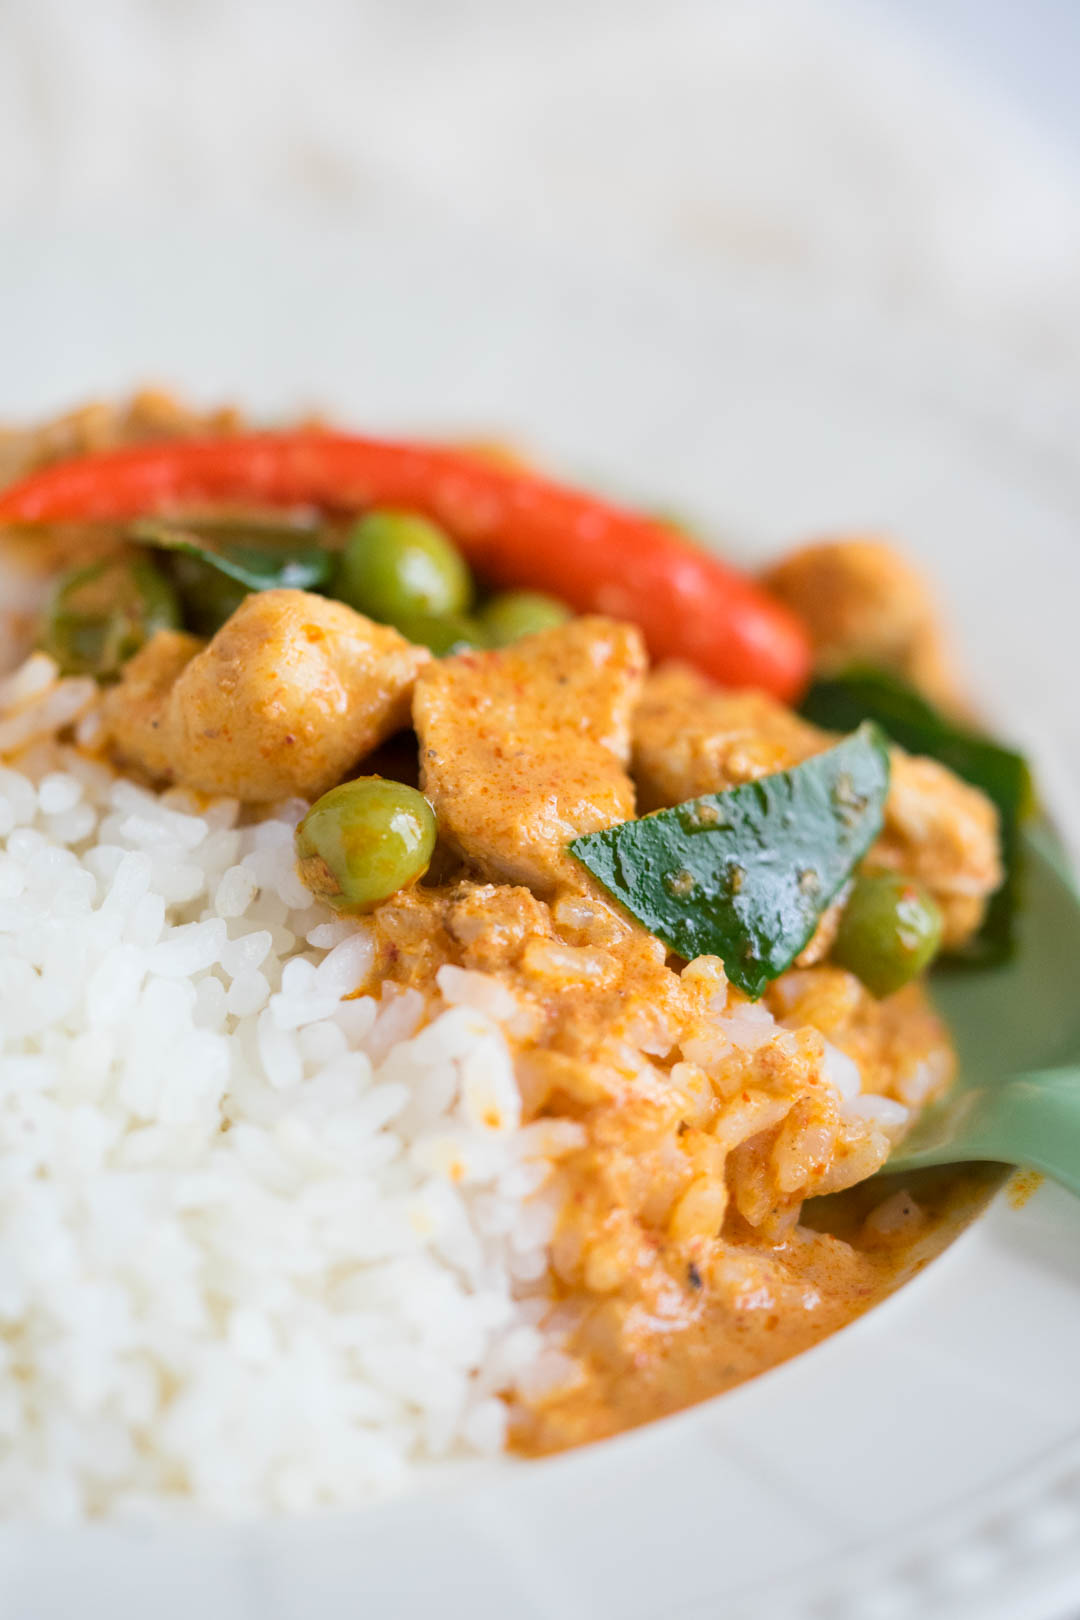 rice with Thai chicken panang curry